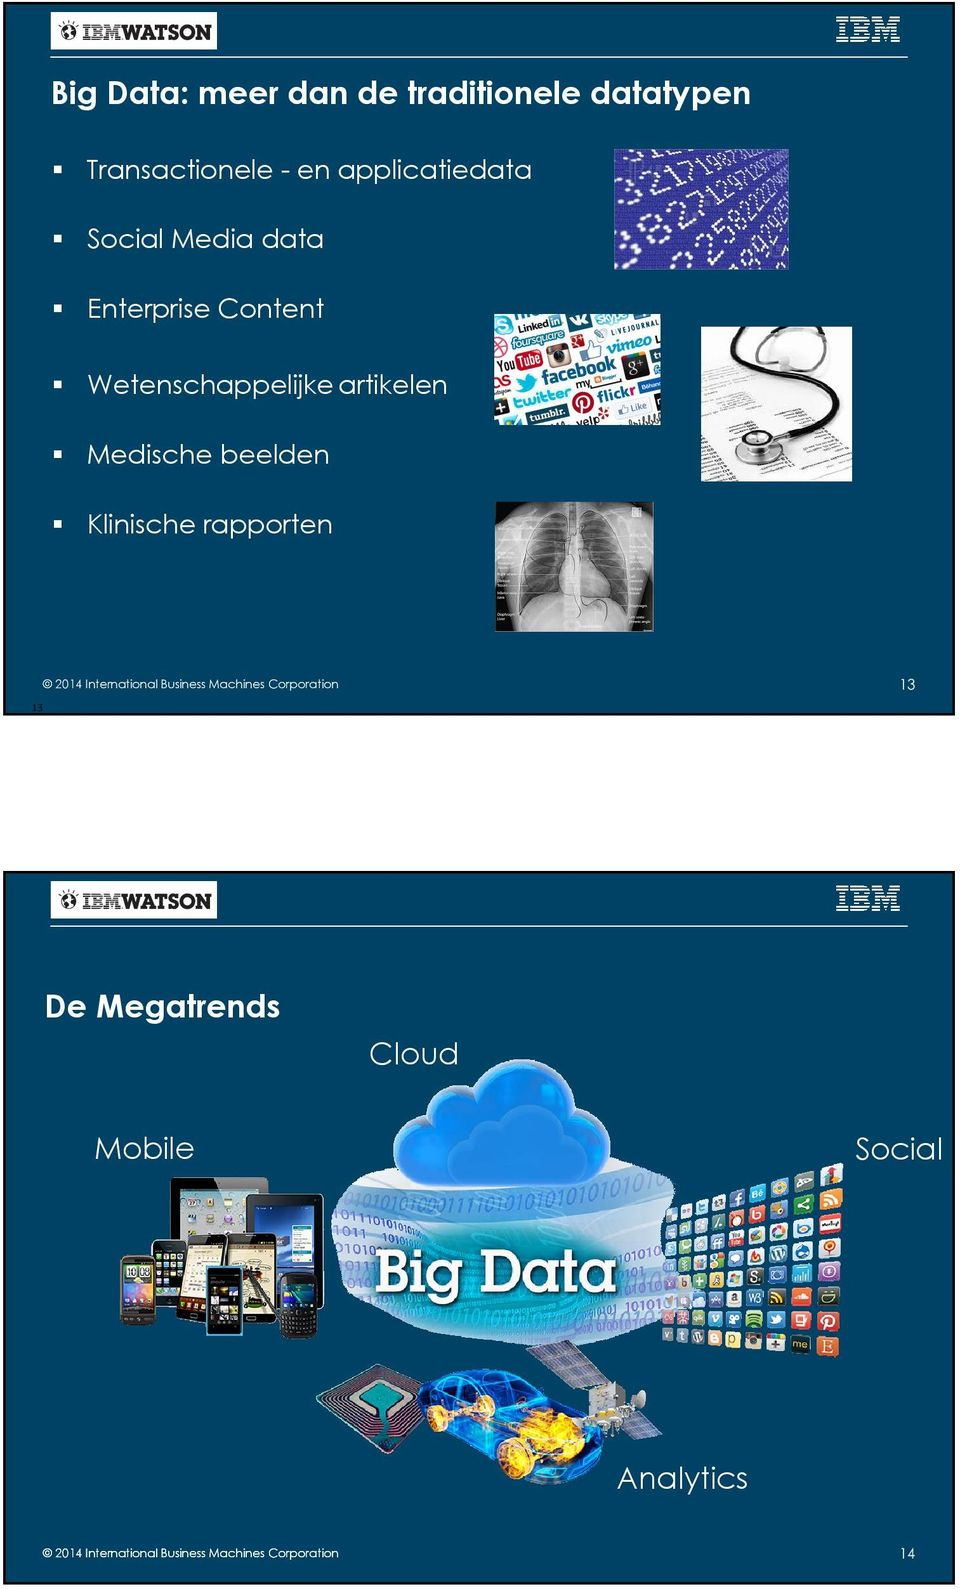 Klinische rapporten 13 2014 International Business Machines Corporation 13 De